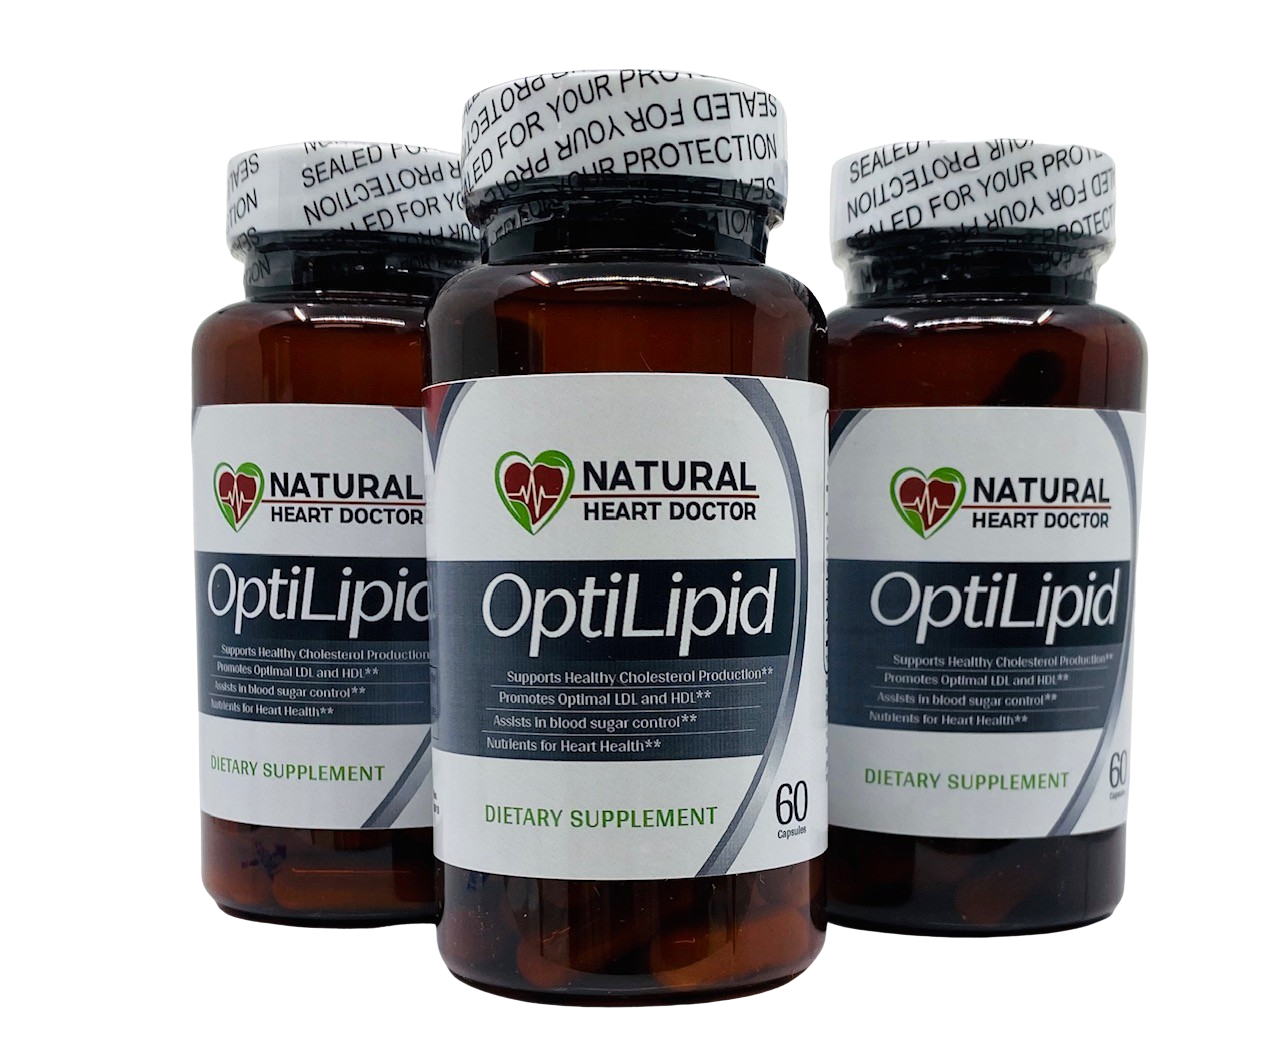 OptiLipid